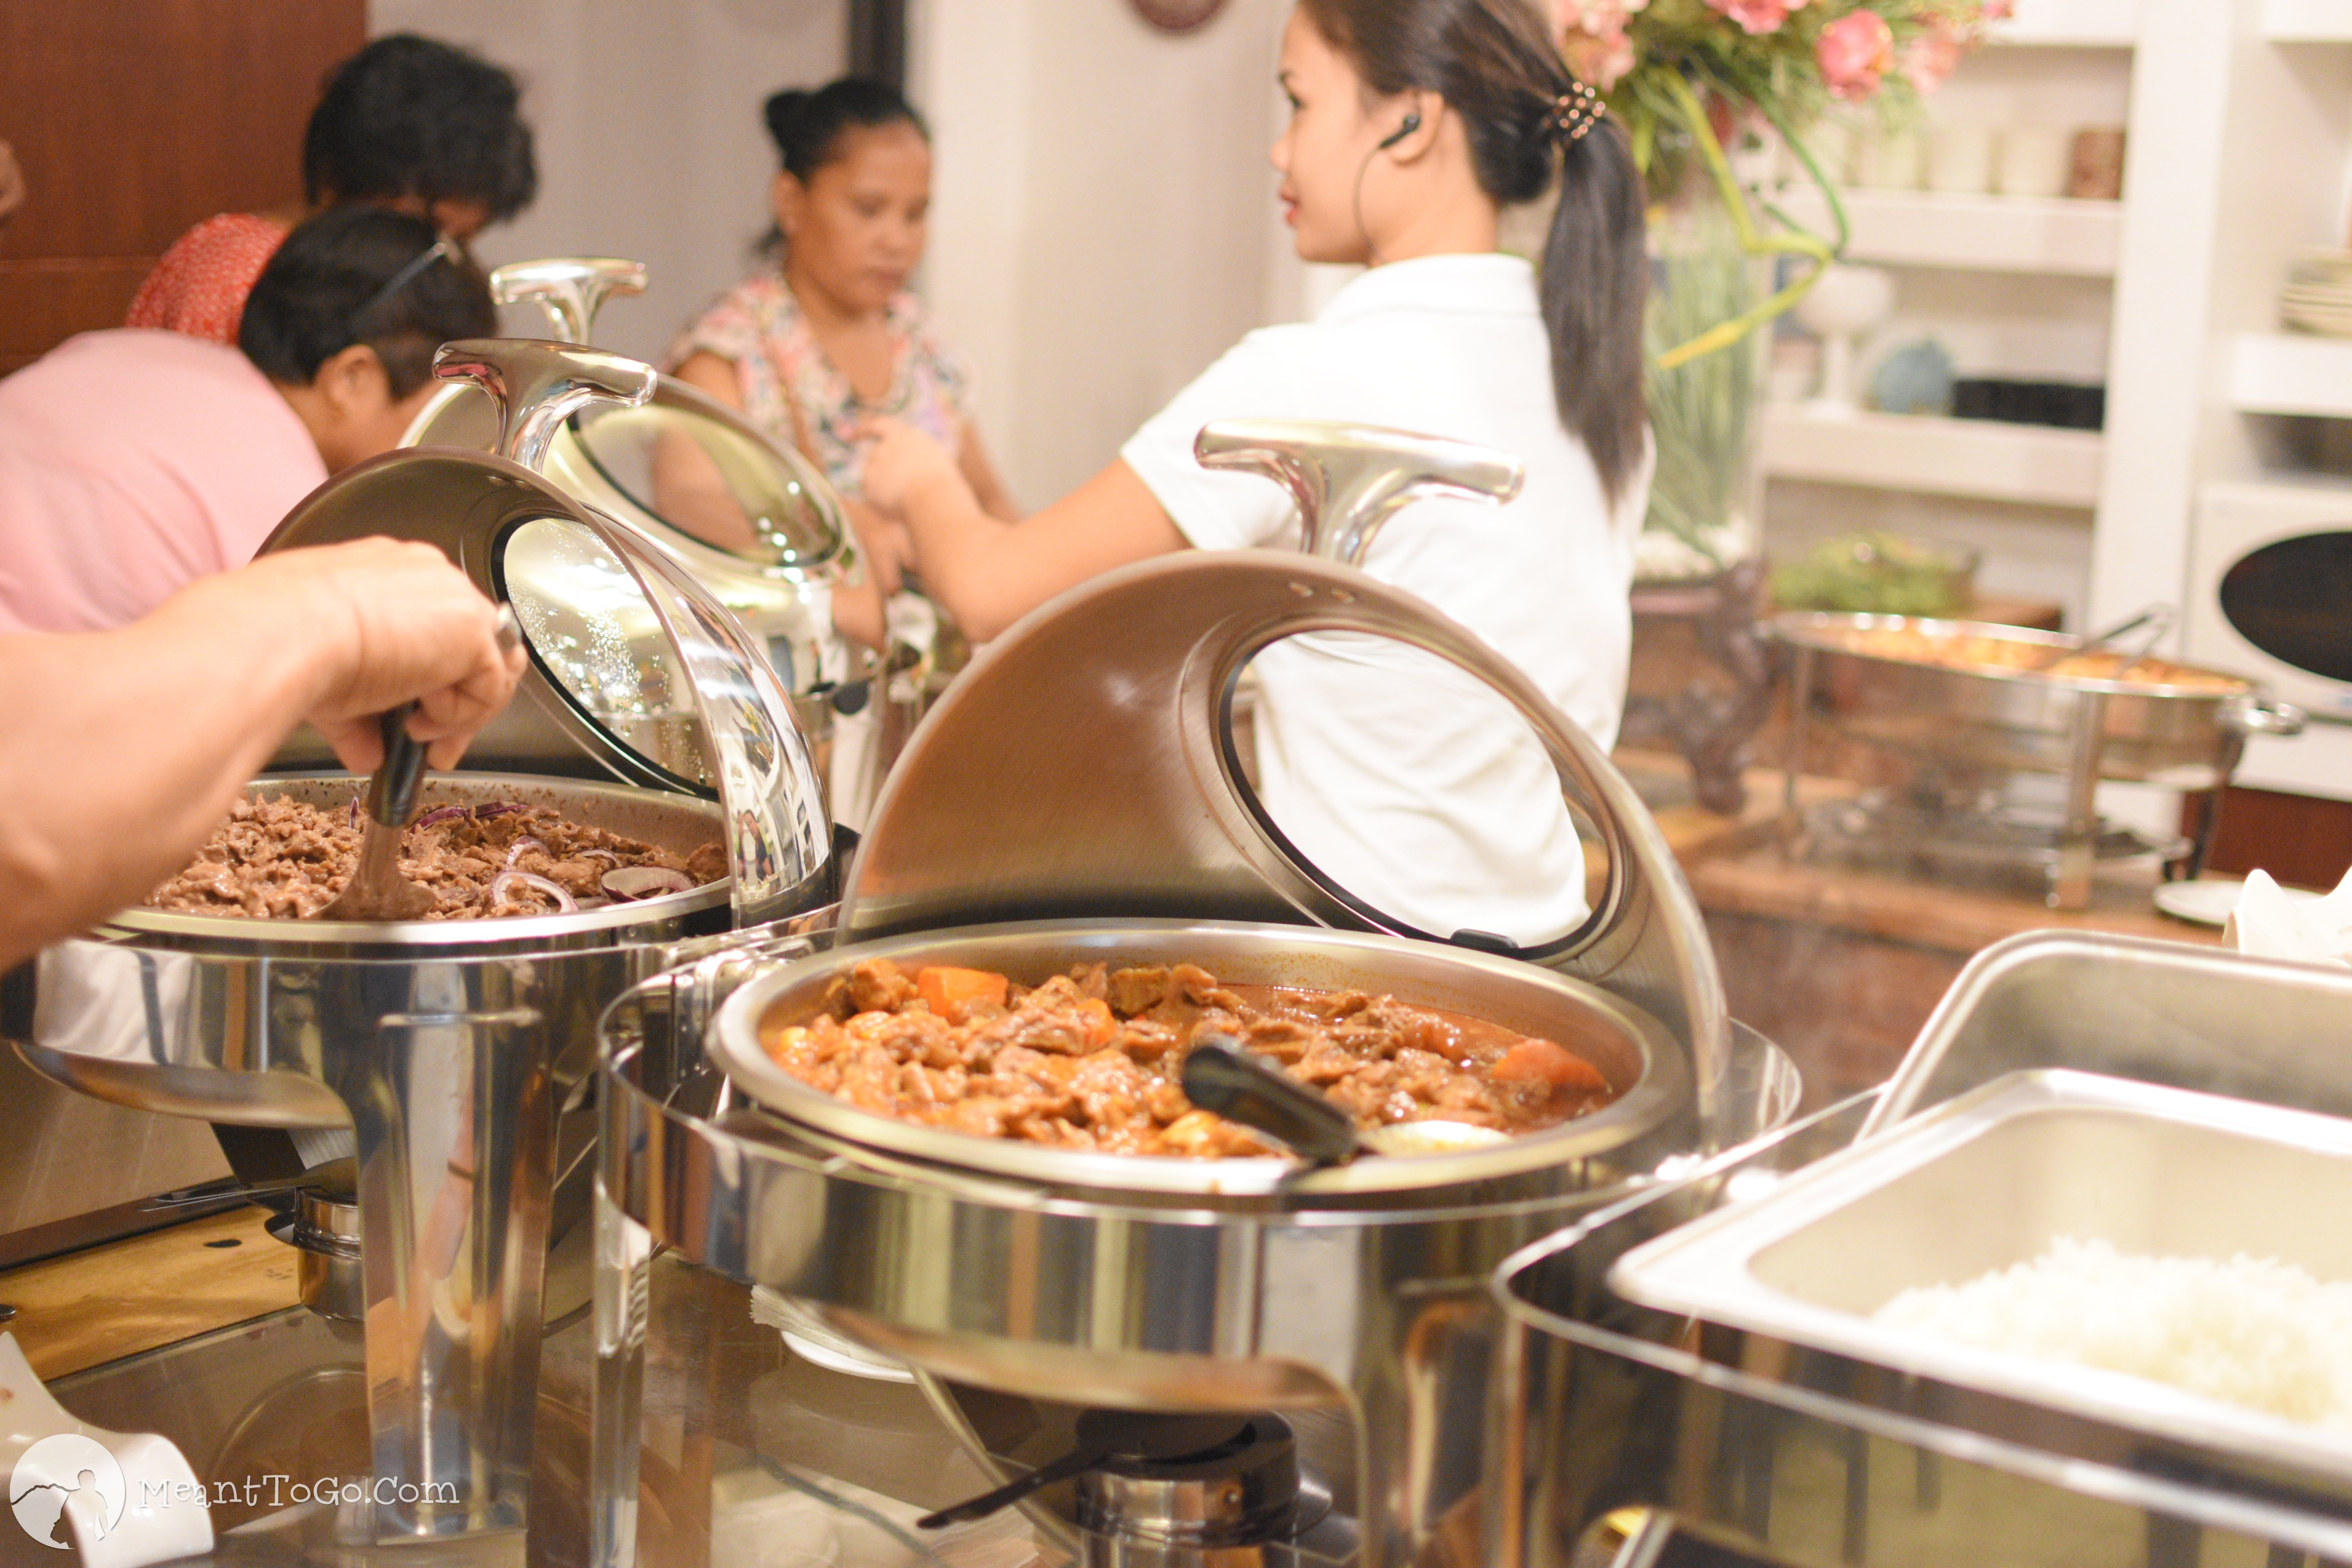 Stephanie Smoke Haus – Buffet Restaurant in Tacloban City